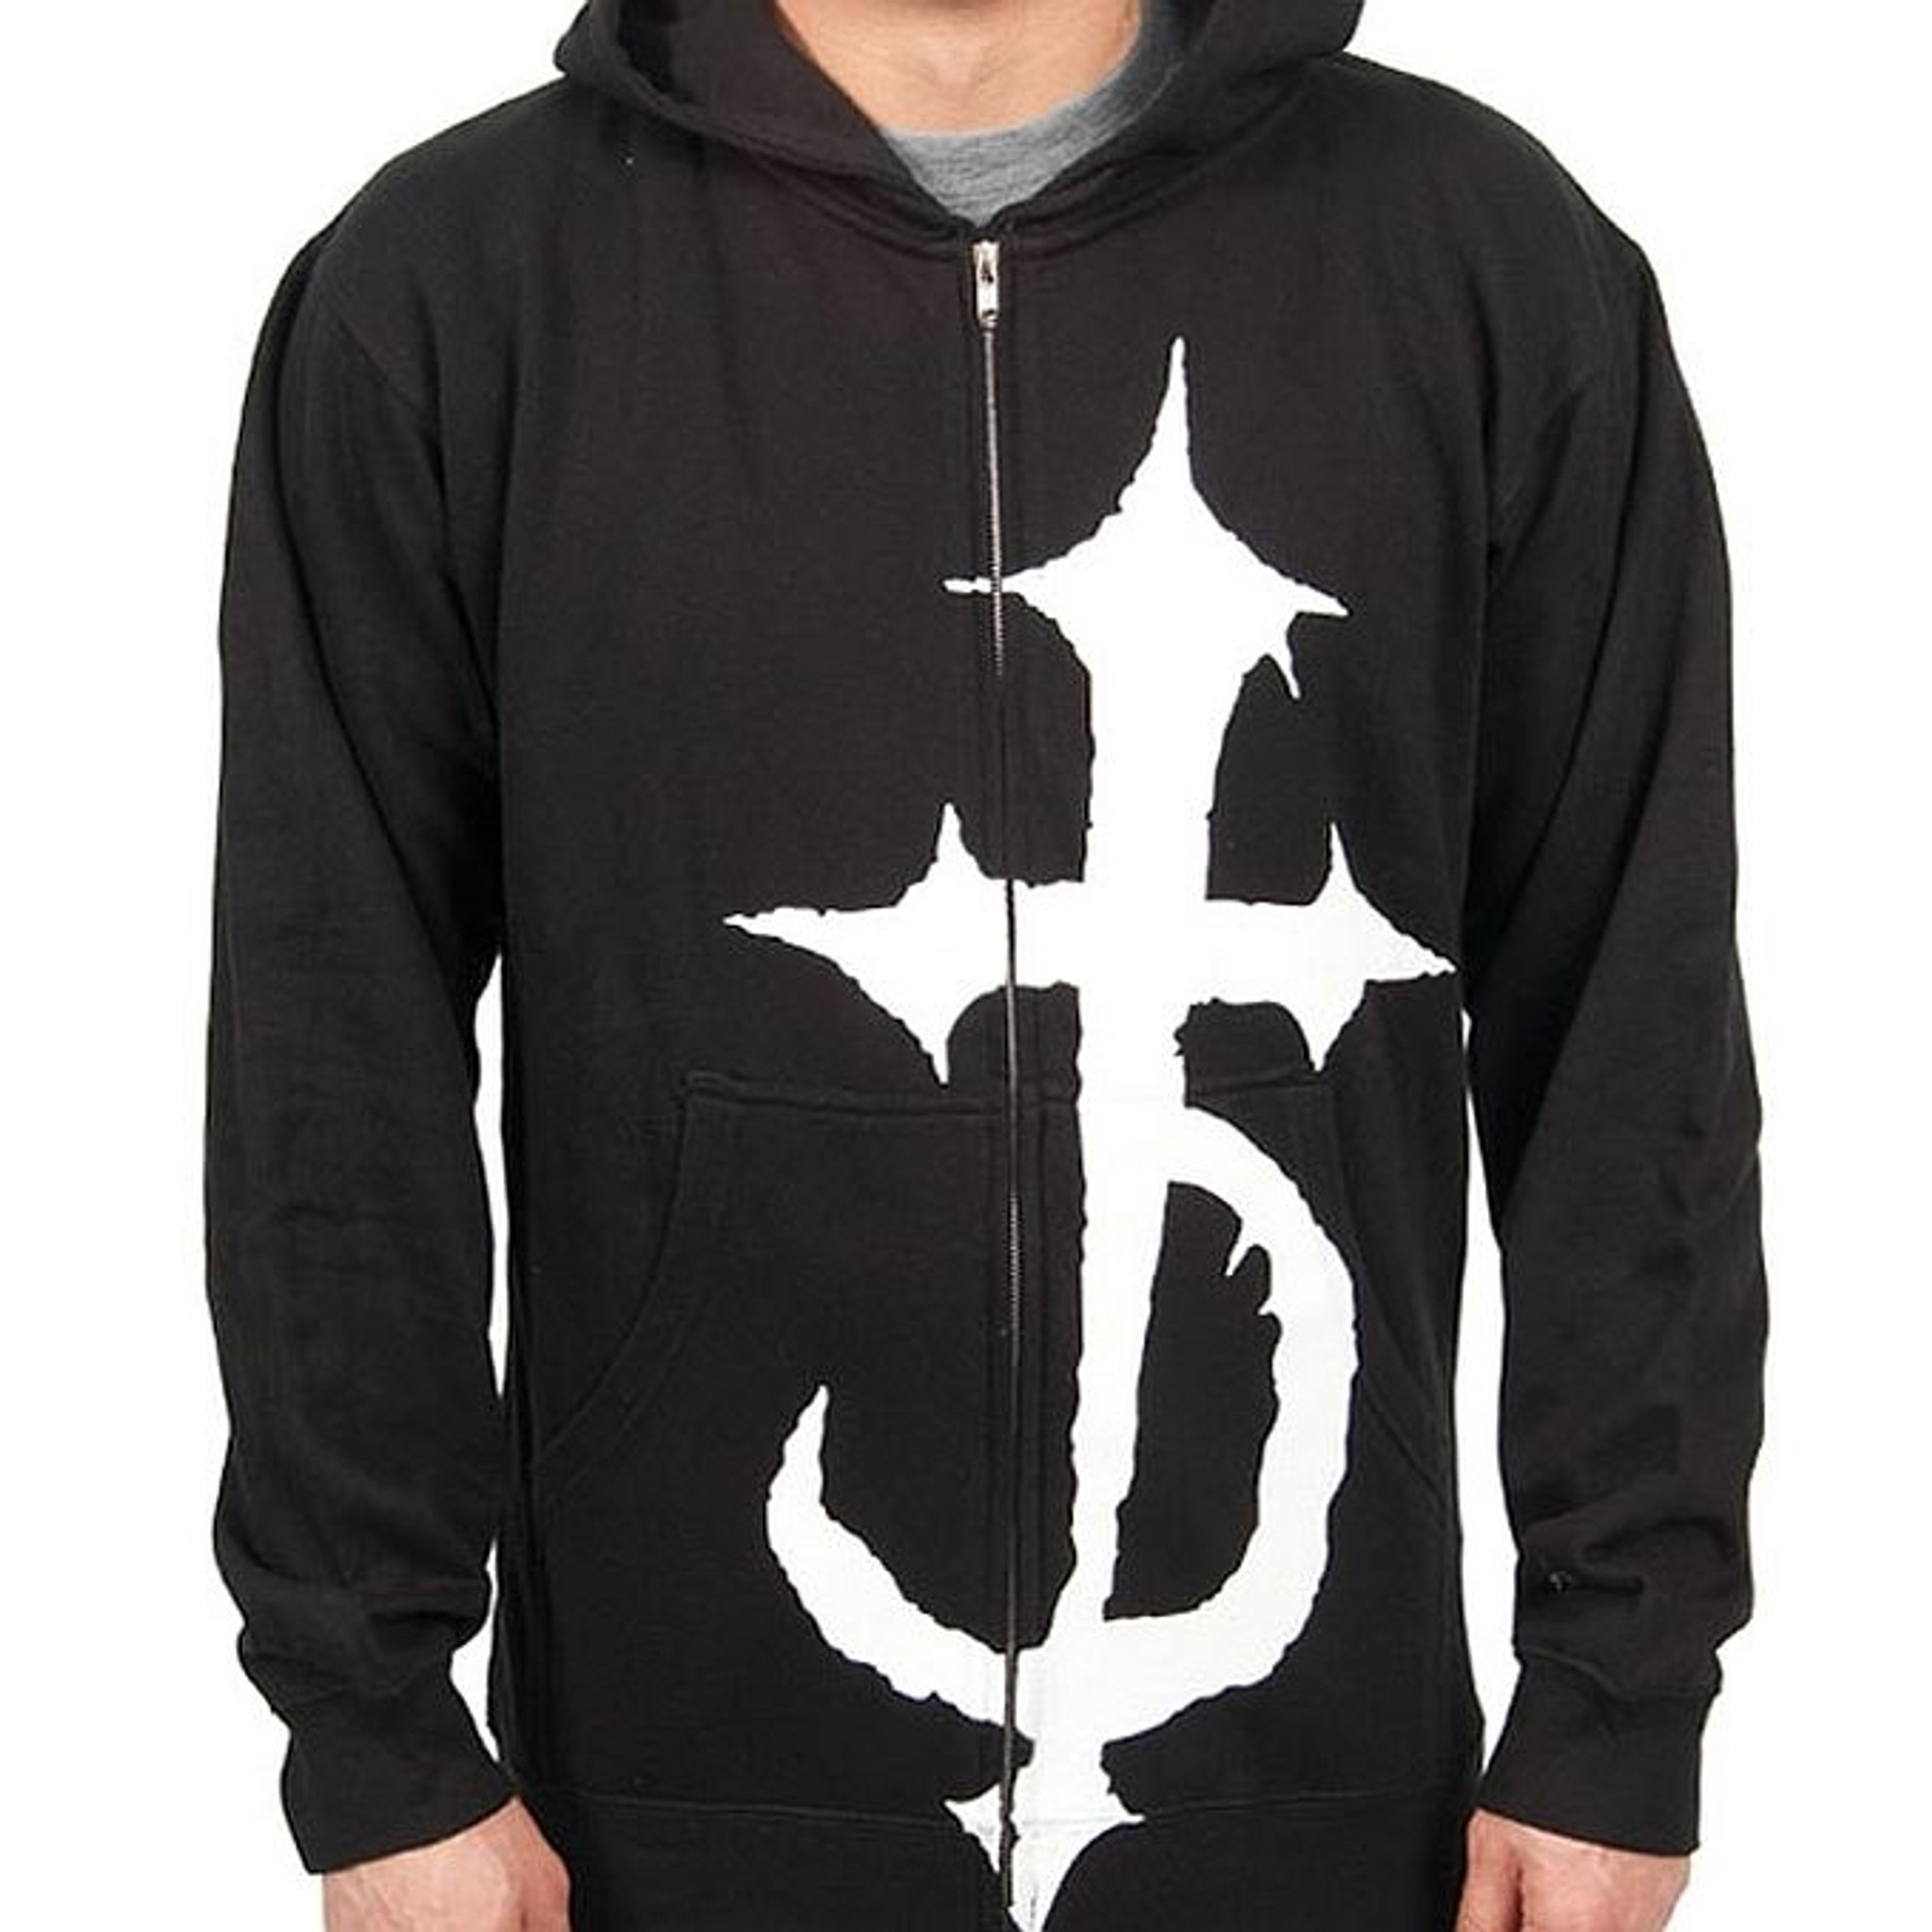 Five Finger Death Punch Iron Cross Slipknot Matel Cross Hooded Sweatshirt For Men Black